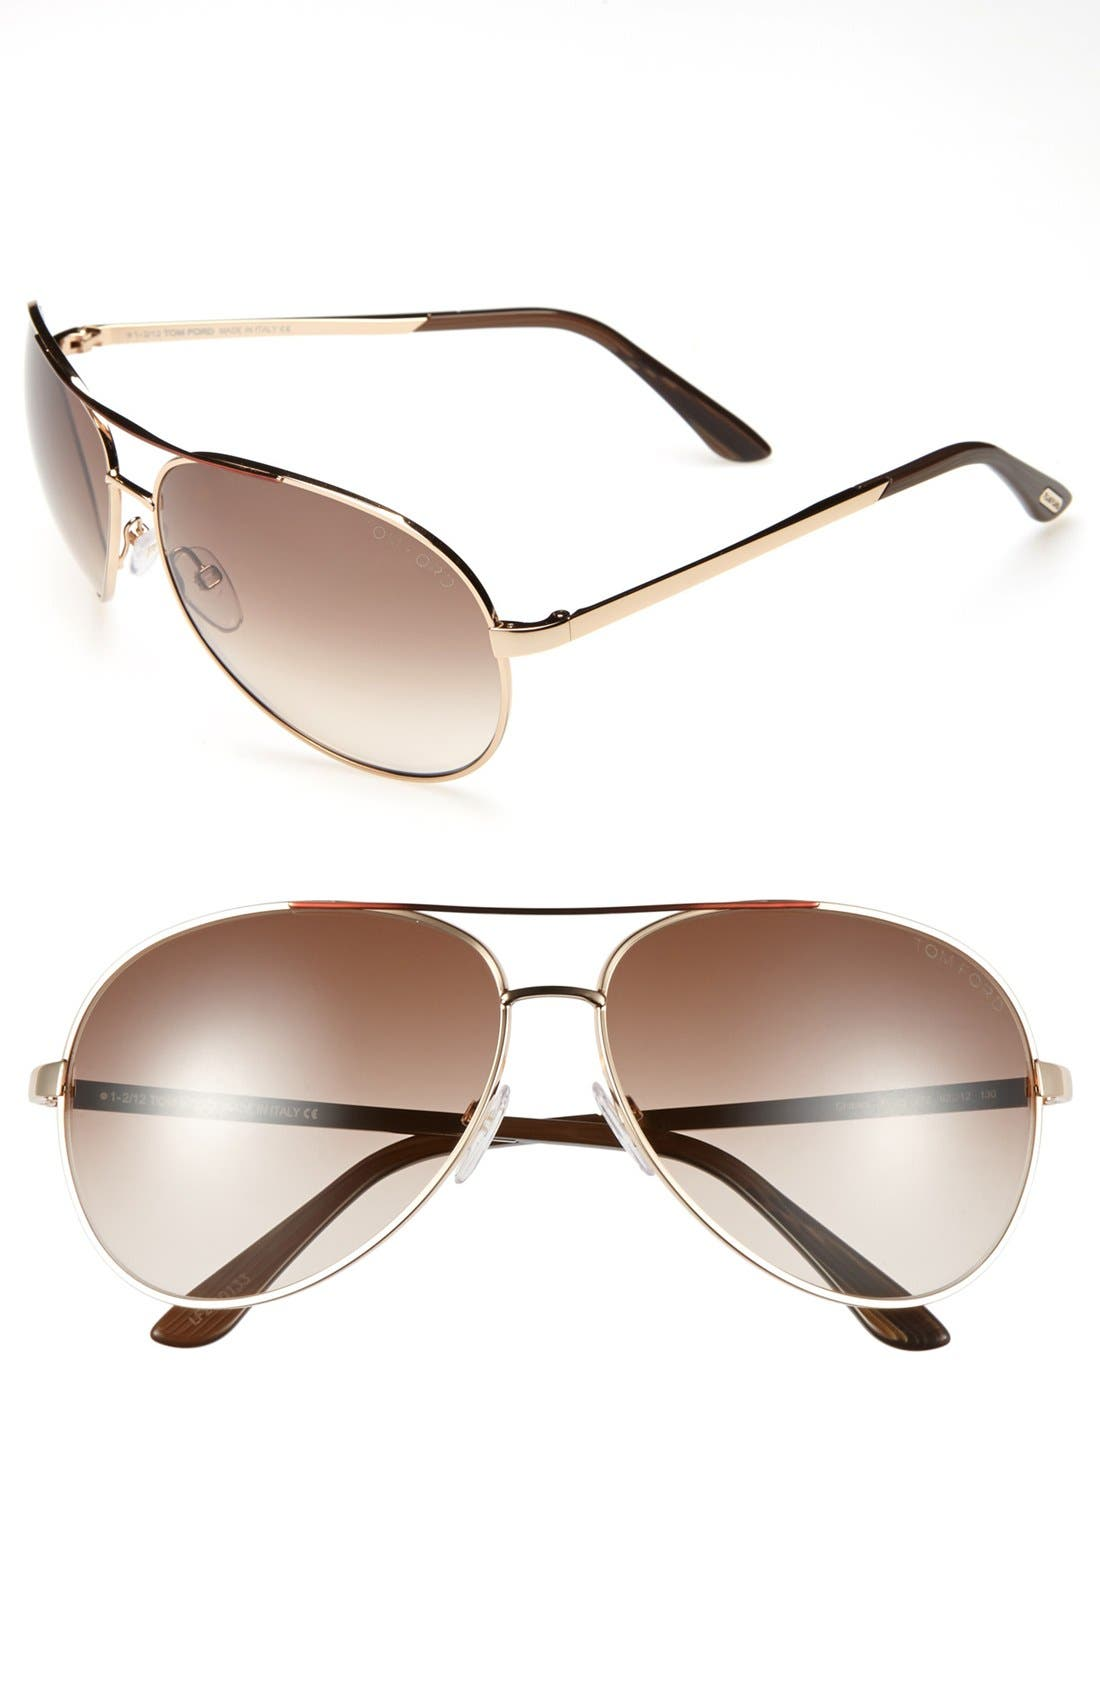 Main Image - Tom Ford 'Charles' 62mm Aviator Sunglasses